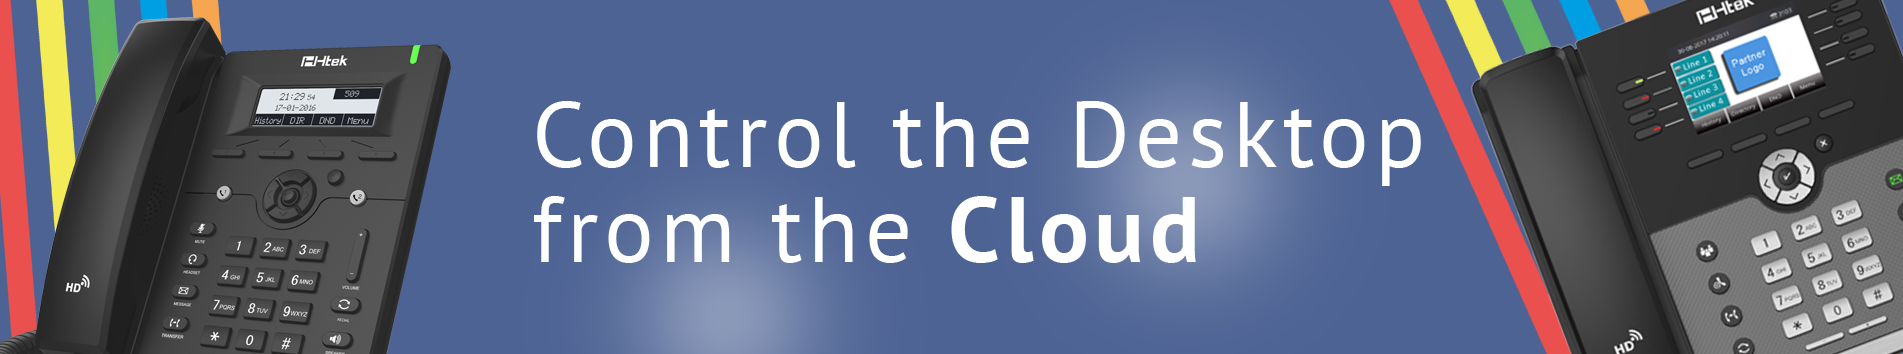 control-the-desktop-from-the-cloud-1